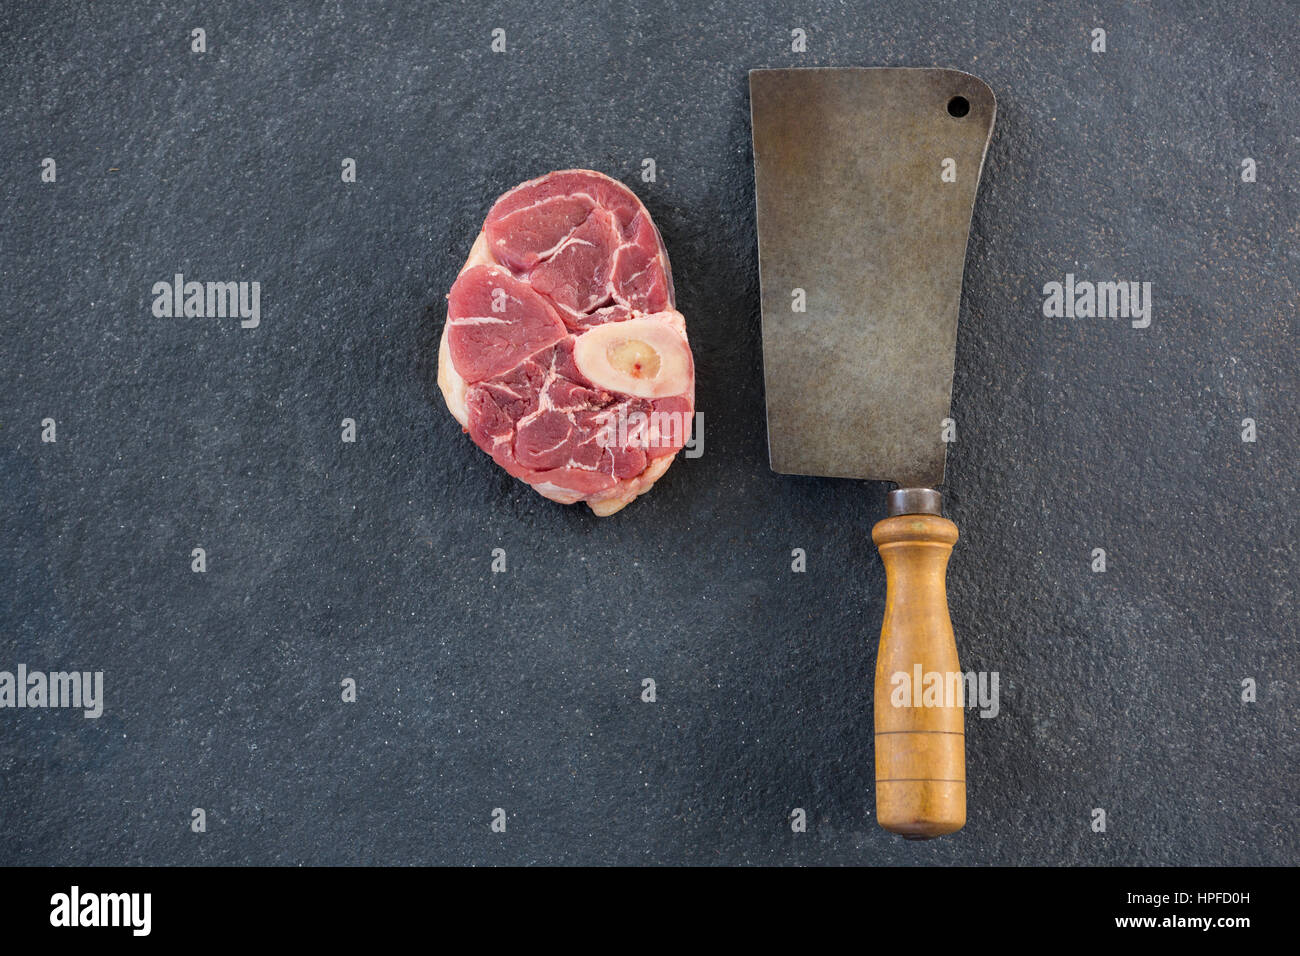 Sirloin chop and cleaver against black background - Stock Image